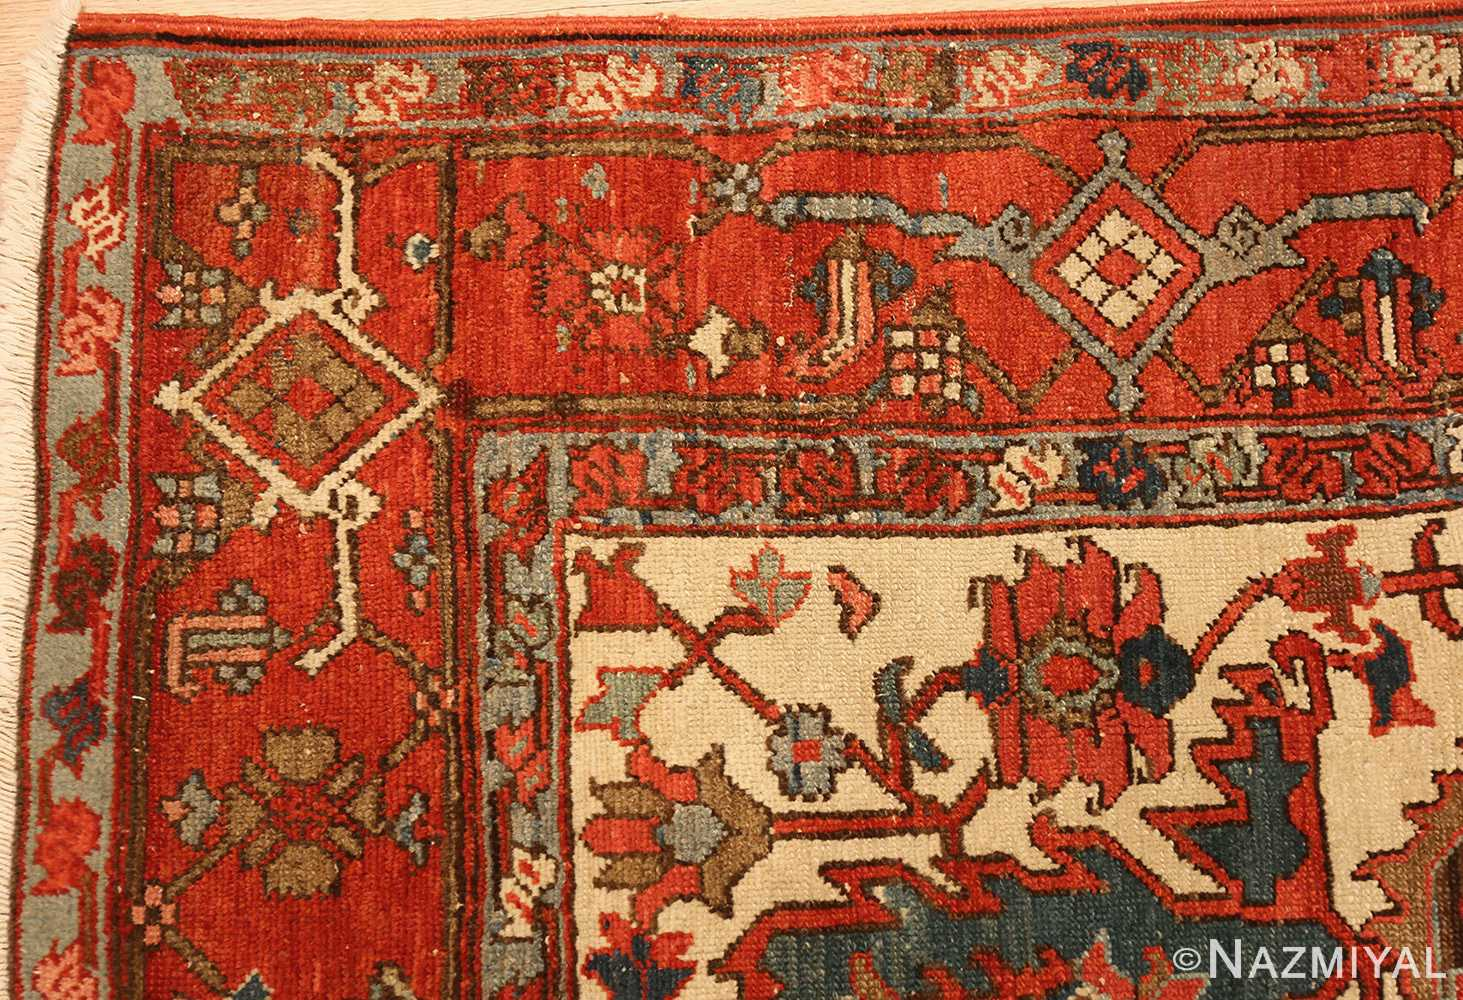 View This Beautiful Small Square Size Antique Pictorial Persian Kerman Rug 49614 Available For At Nazmiyal S Extensive Collection Of And